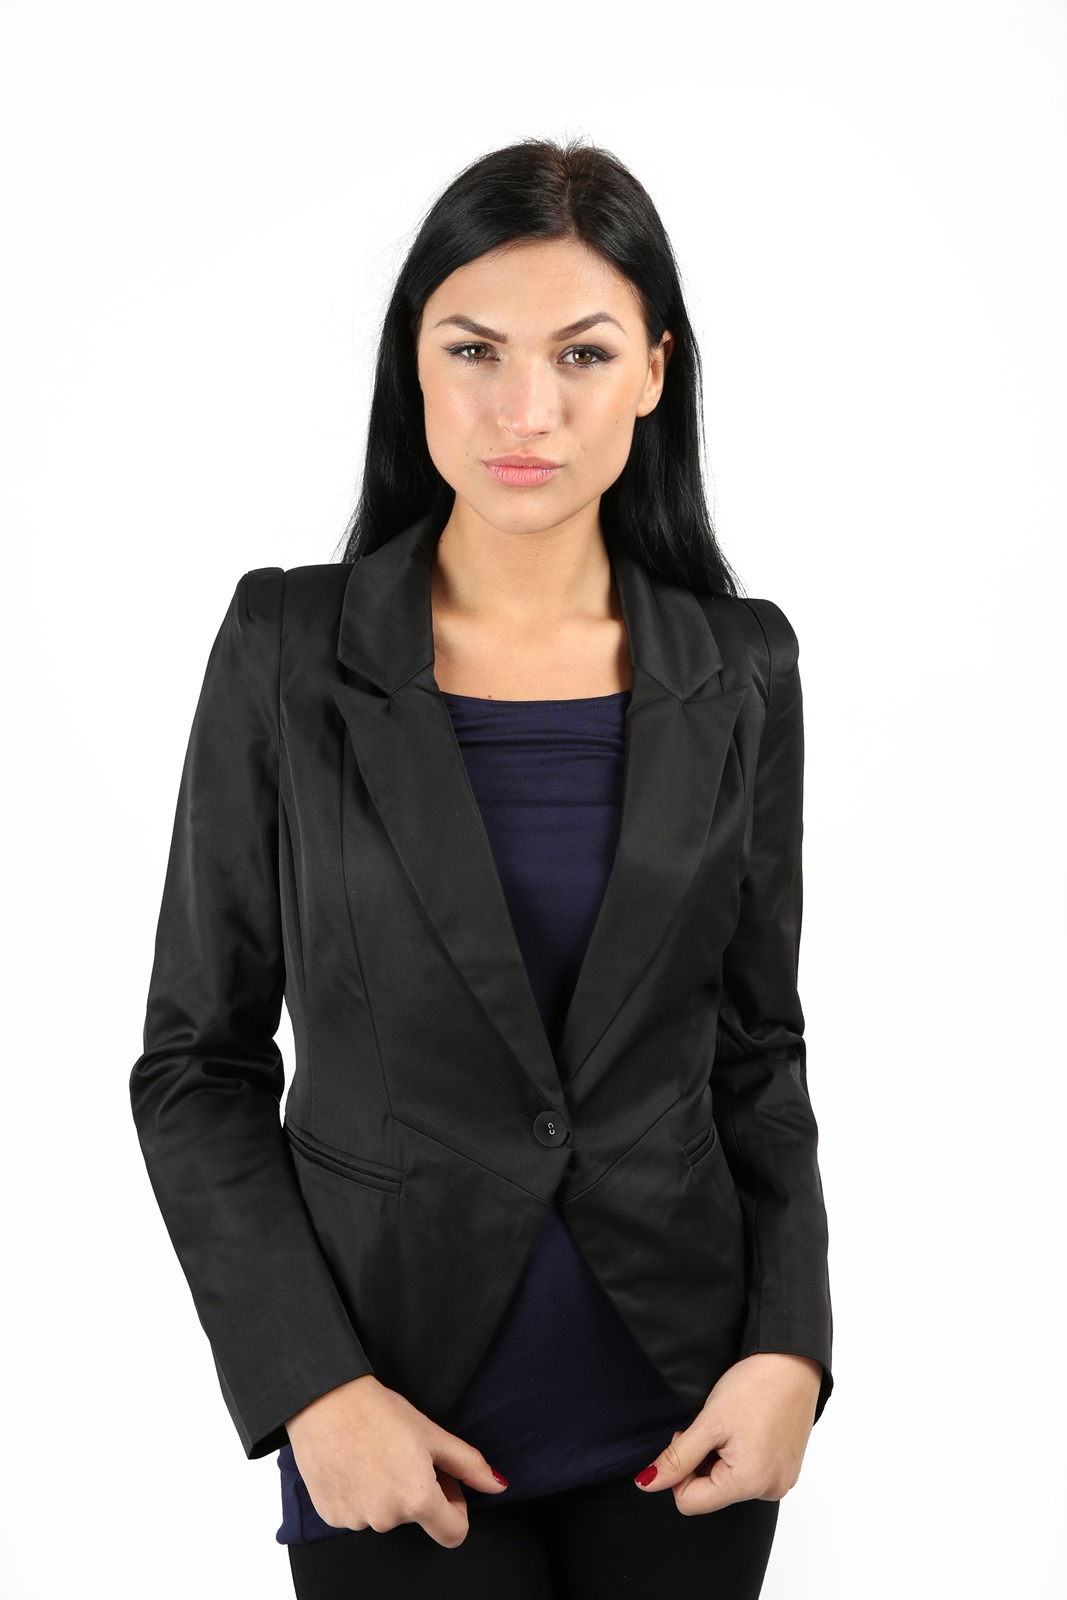 Find 16 from the Womens department at Debenhams. Shop a wide range of Coats & jackets products and more at our online shop today. Women's coats & jackets size Products. Filtered by: Categories; Coats & jackets Size; 16 Navy suedette biker jacket Save. Was £ Now £ Wallis Navy short padded coat Save. Was £